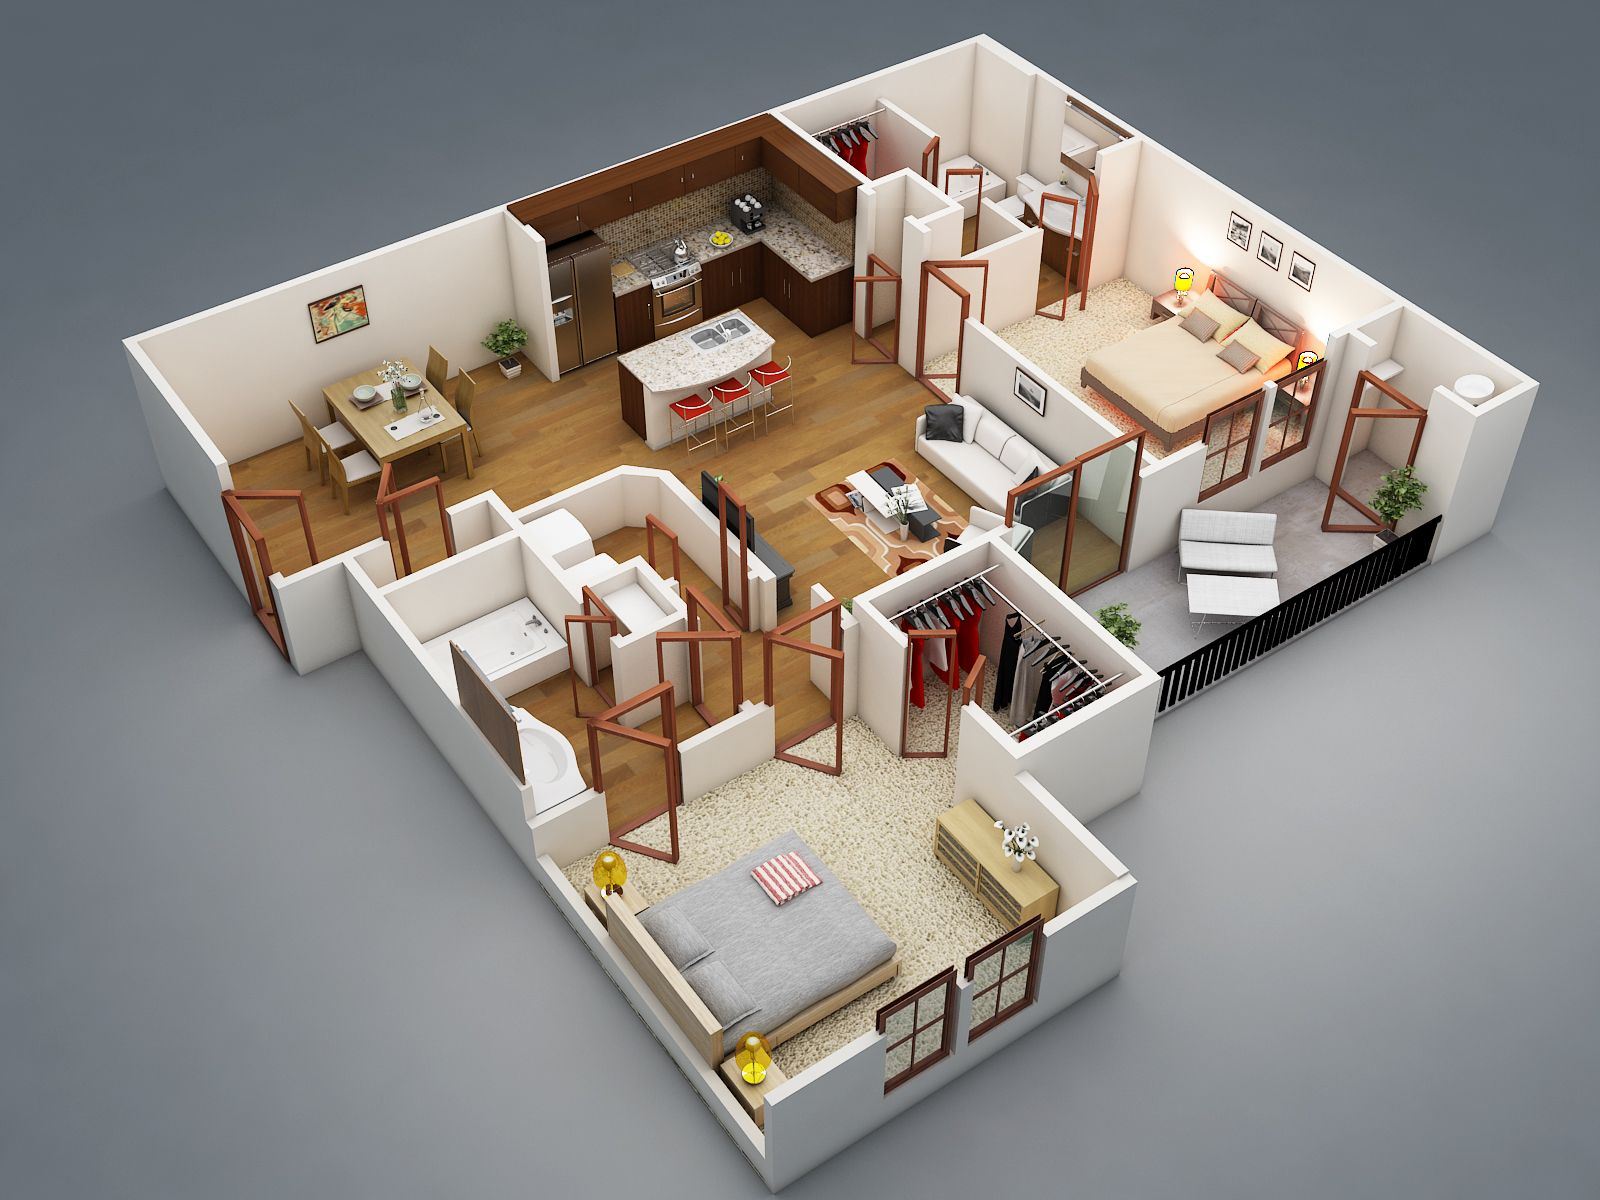 25 One Bedroom House/Apartment Plans | One bedroom house ...